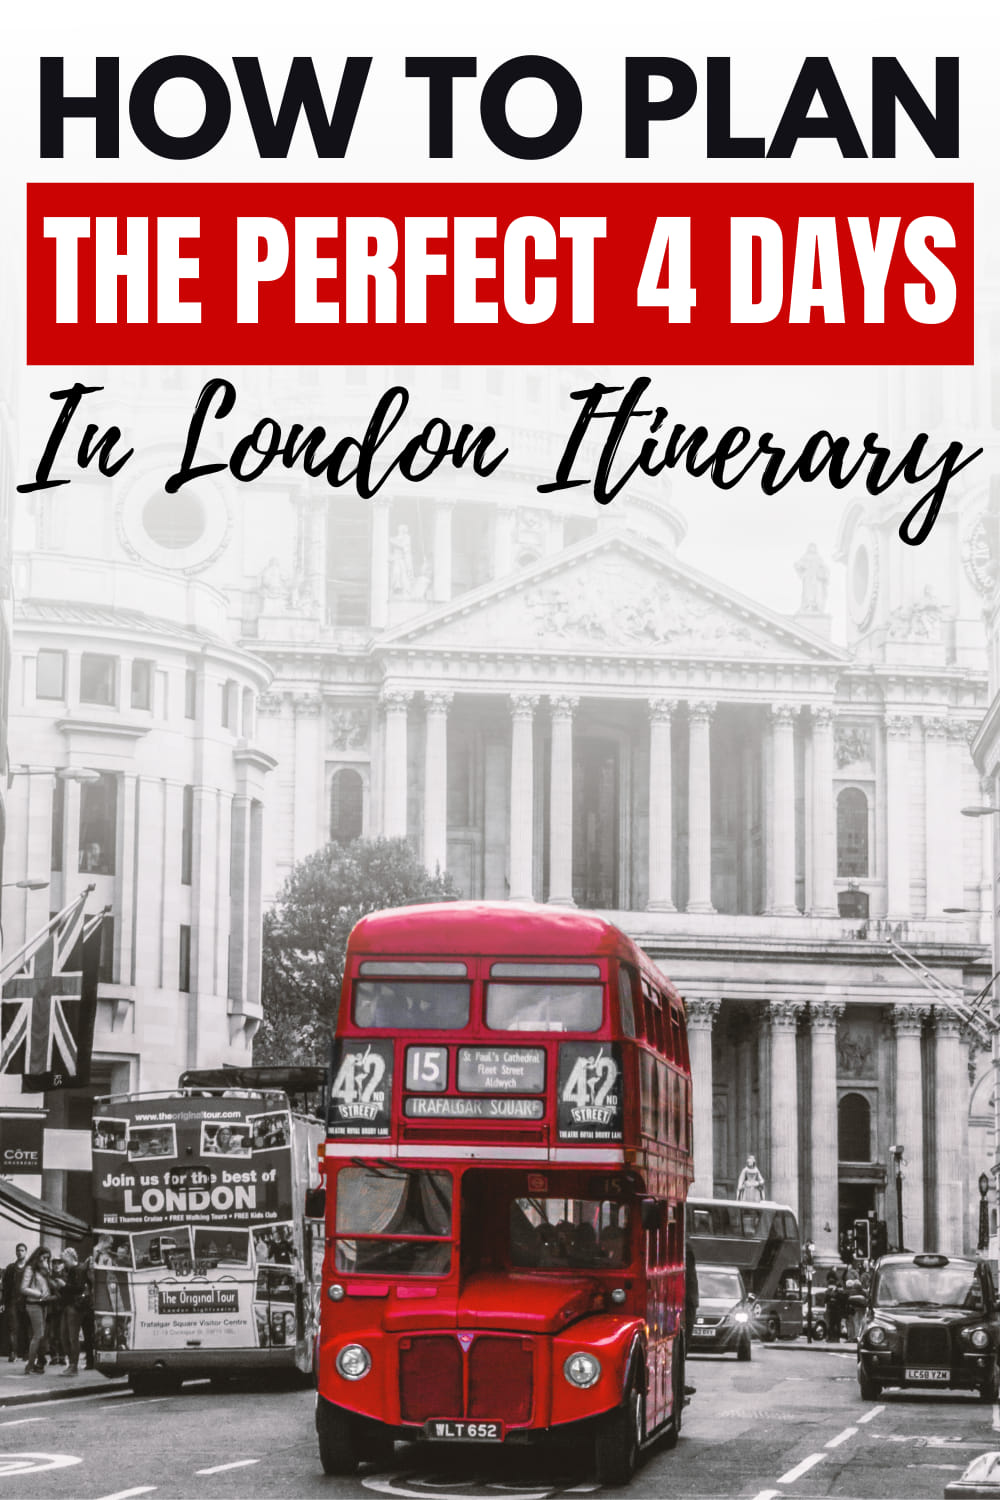 The Perfect 4 Days in London Itinerary